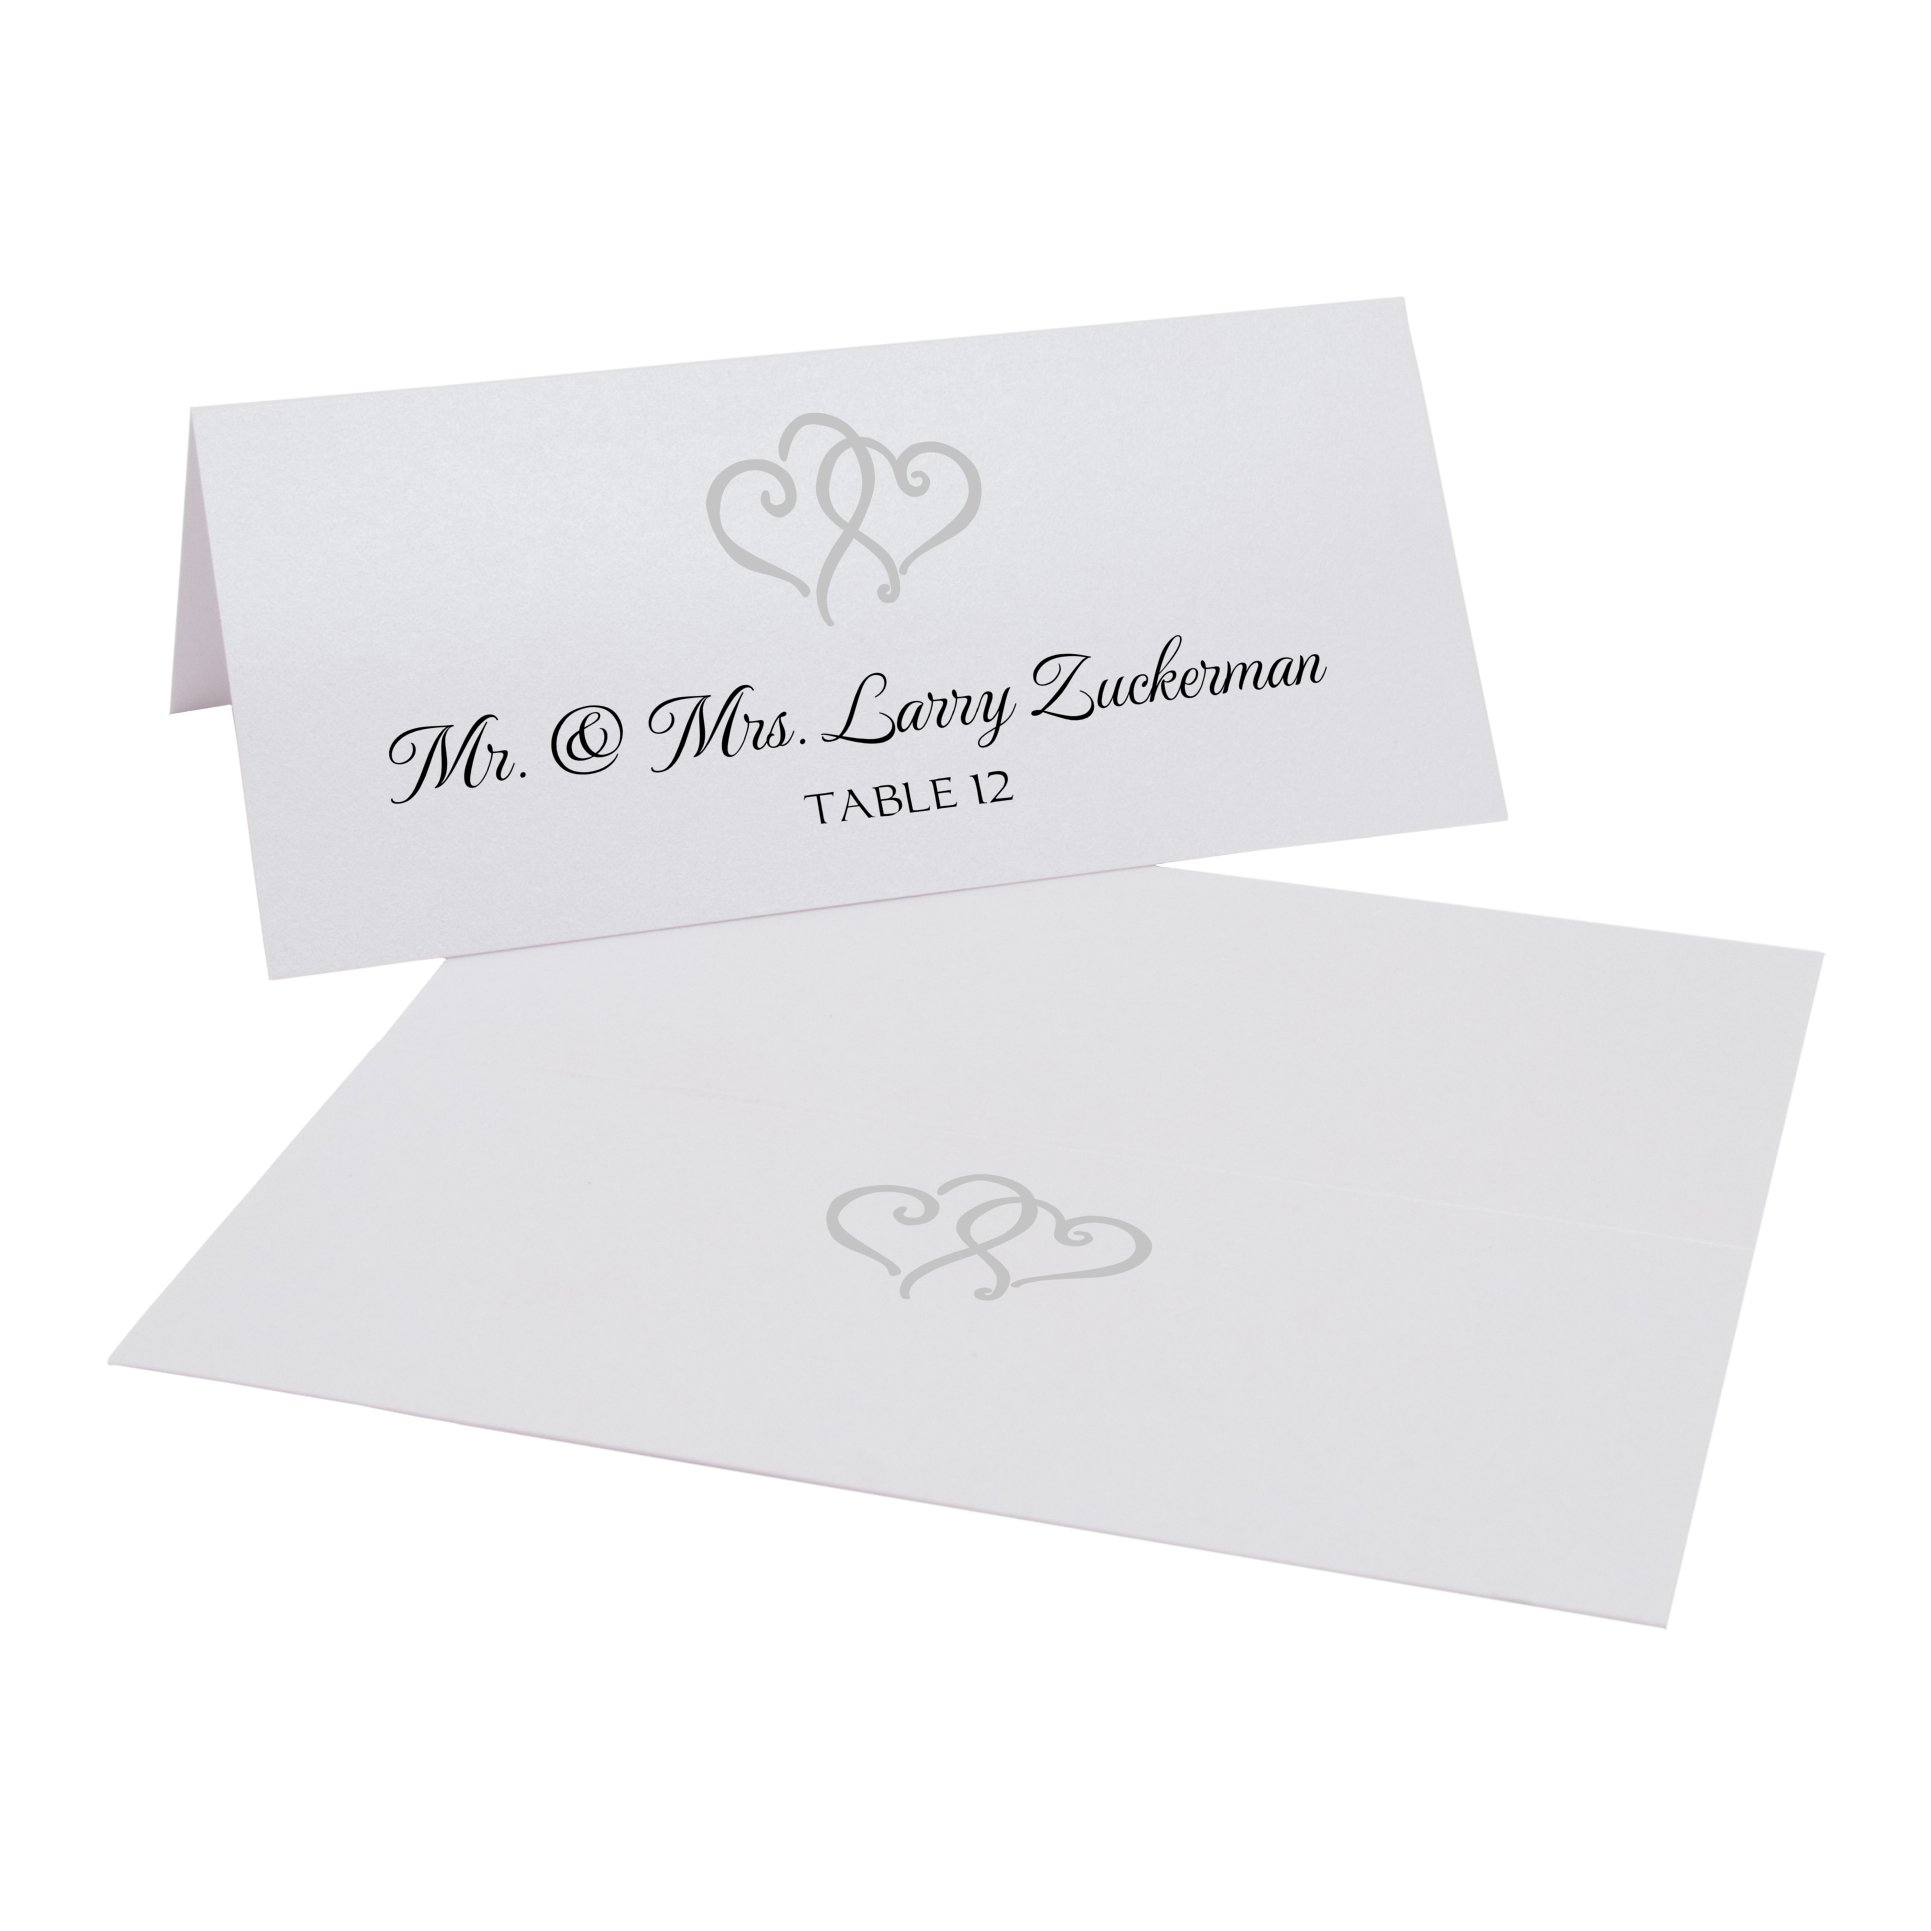 Linked Hearts Place Cards, Pearl White, Silver, Set of 375 by Documents and Designs